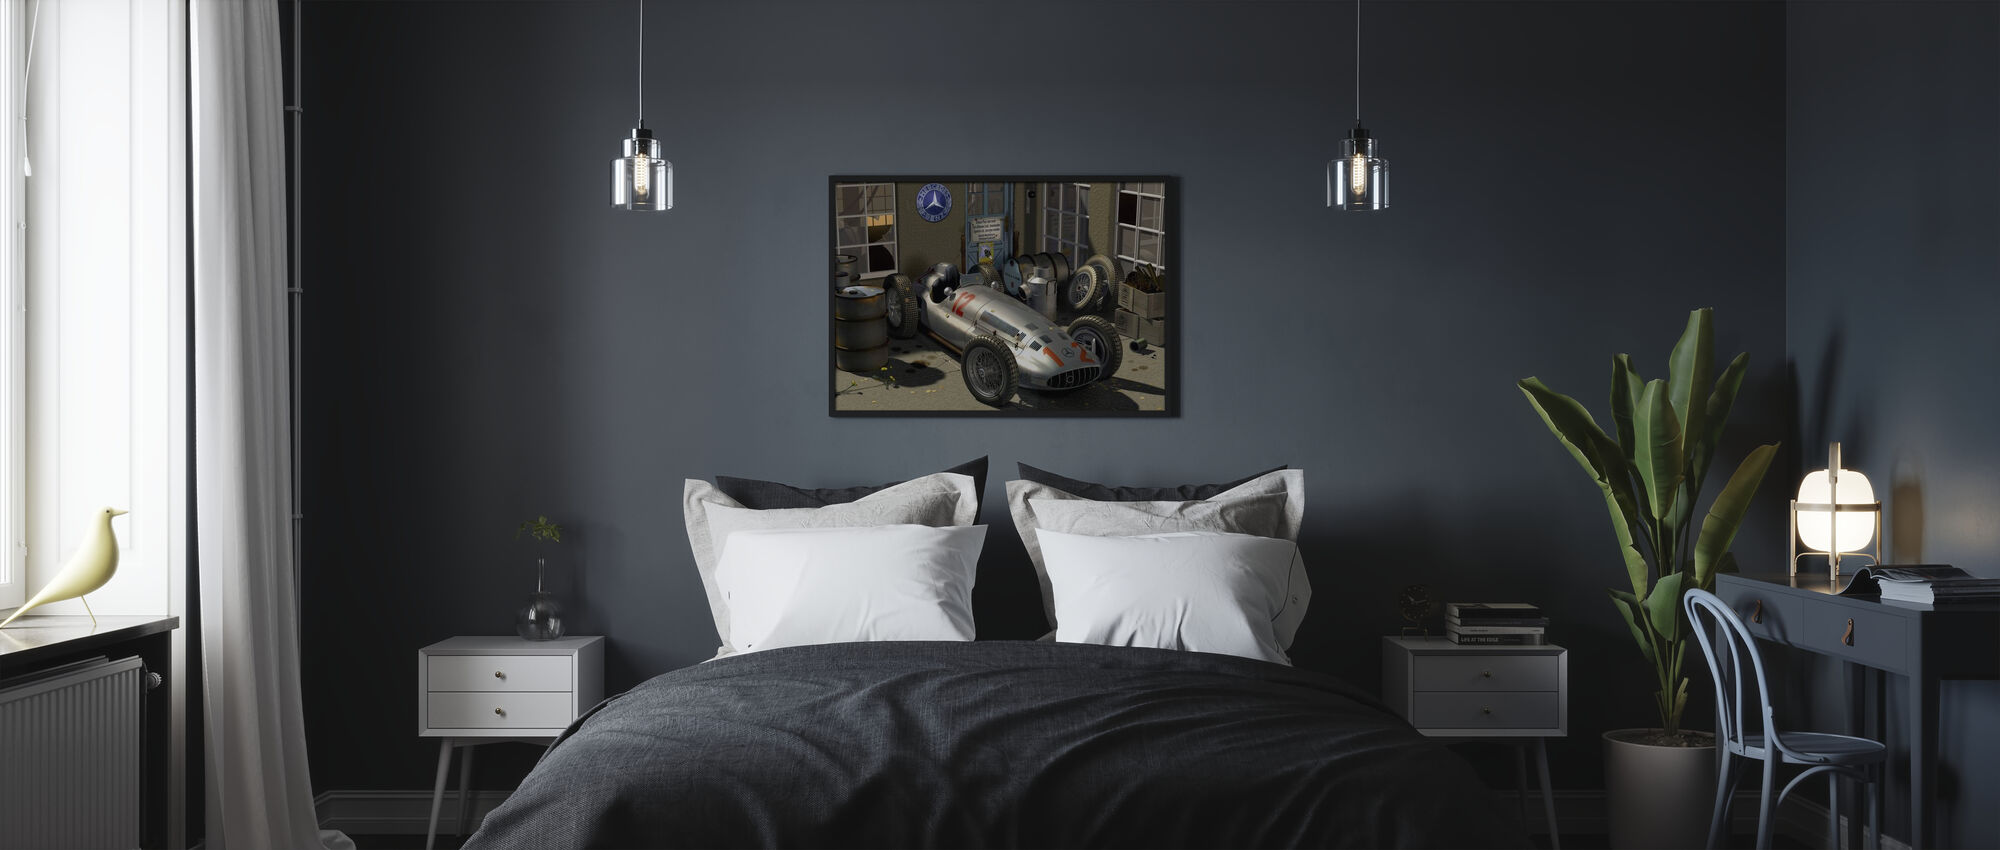 Carriage - Poster - Bedroom